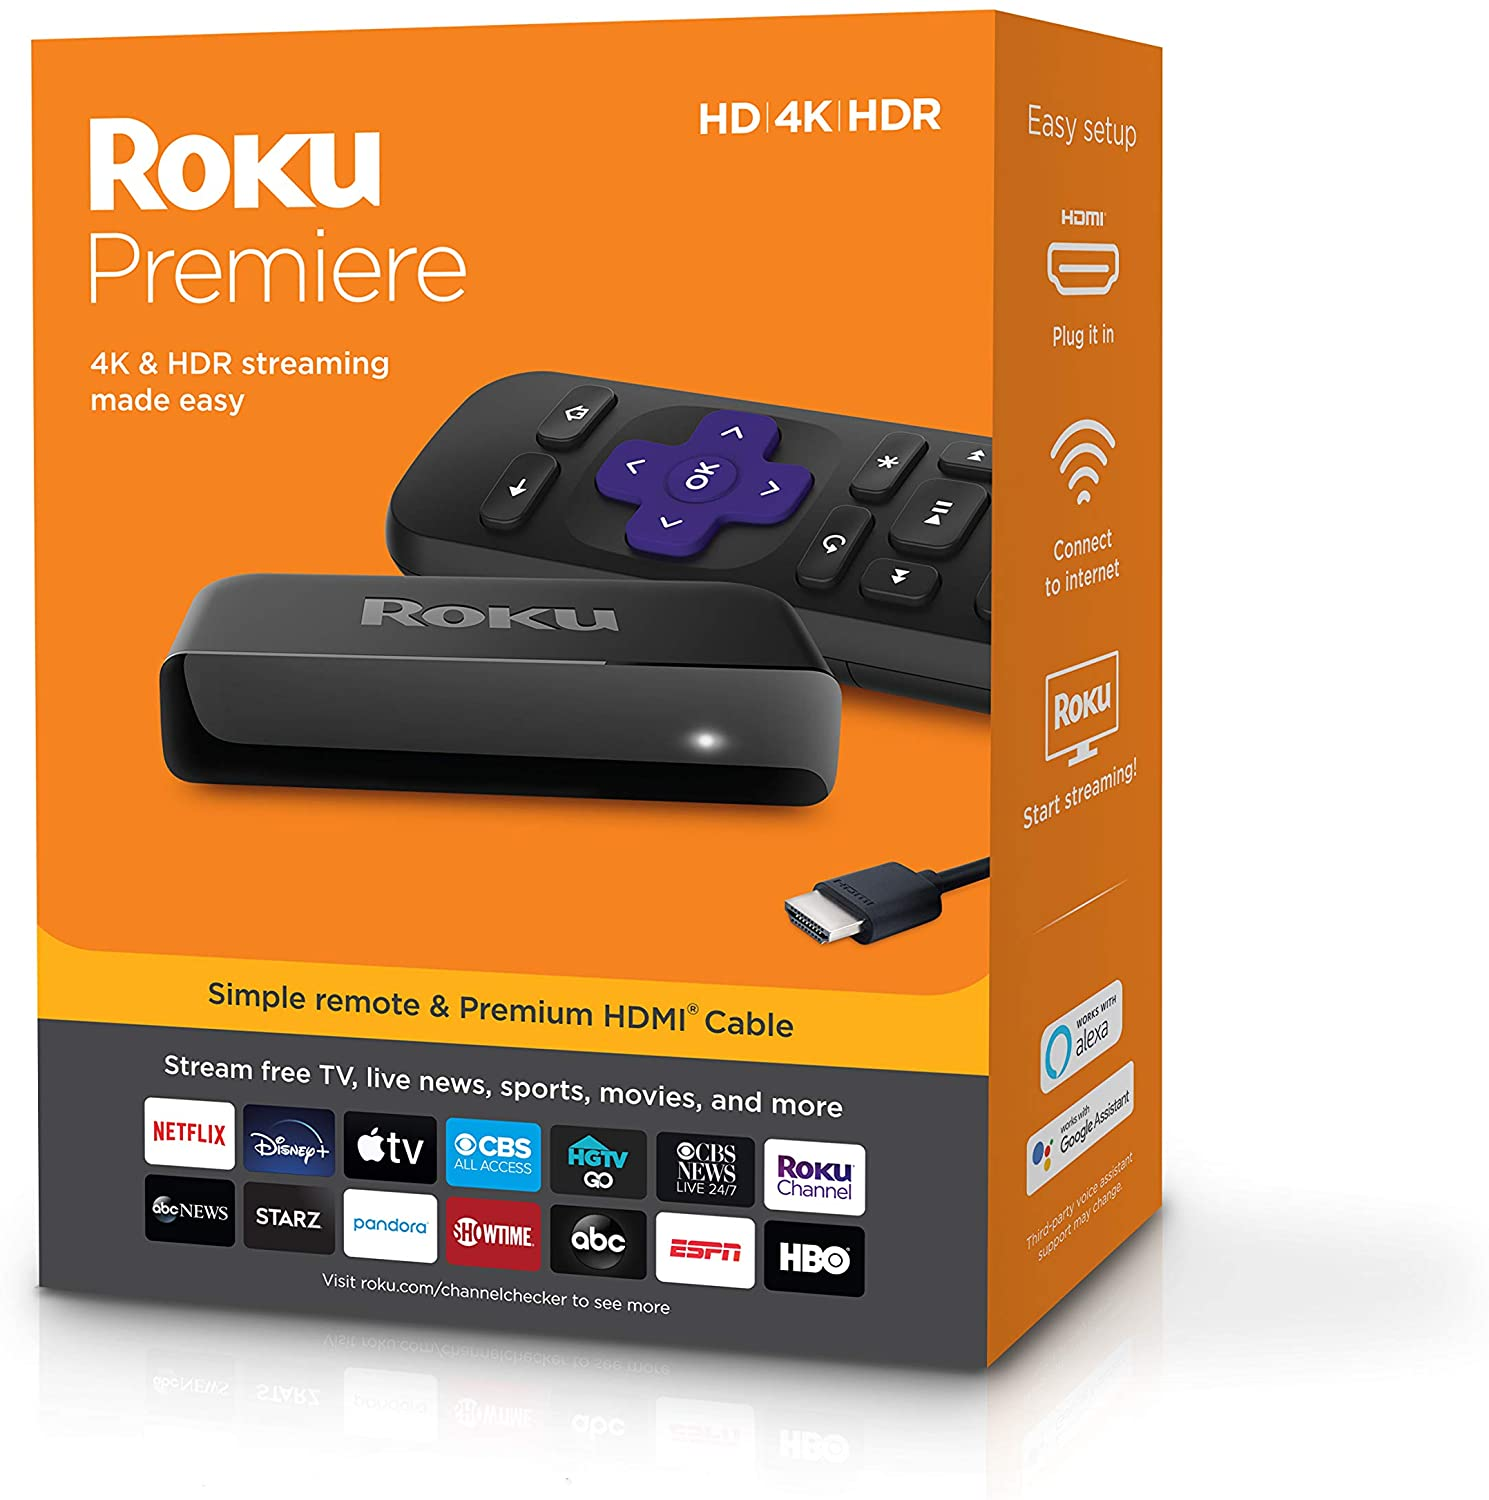 Roku Premiere HD 4K HDR Streaming Media Player, Simple Remote and Premium HDMI Cable